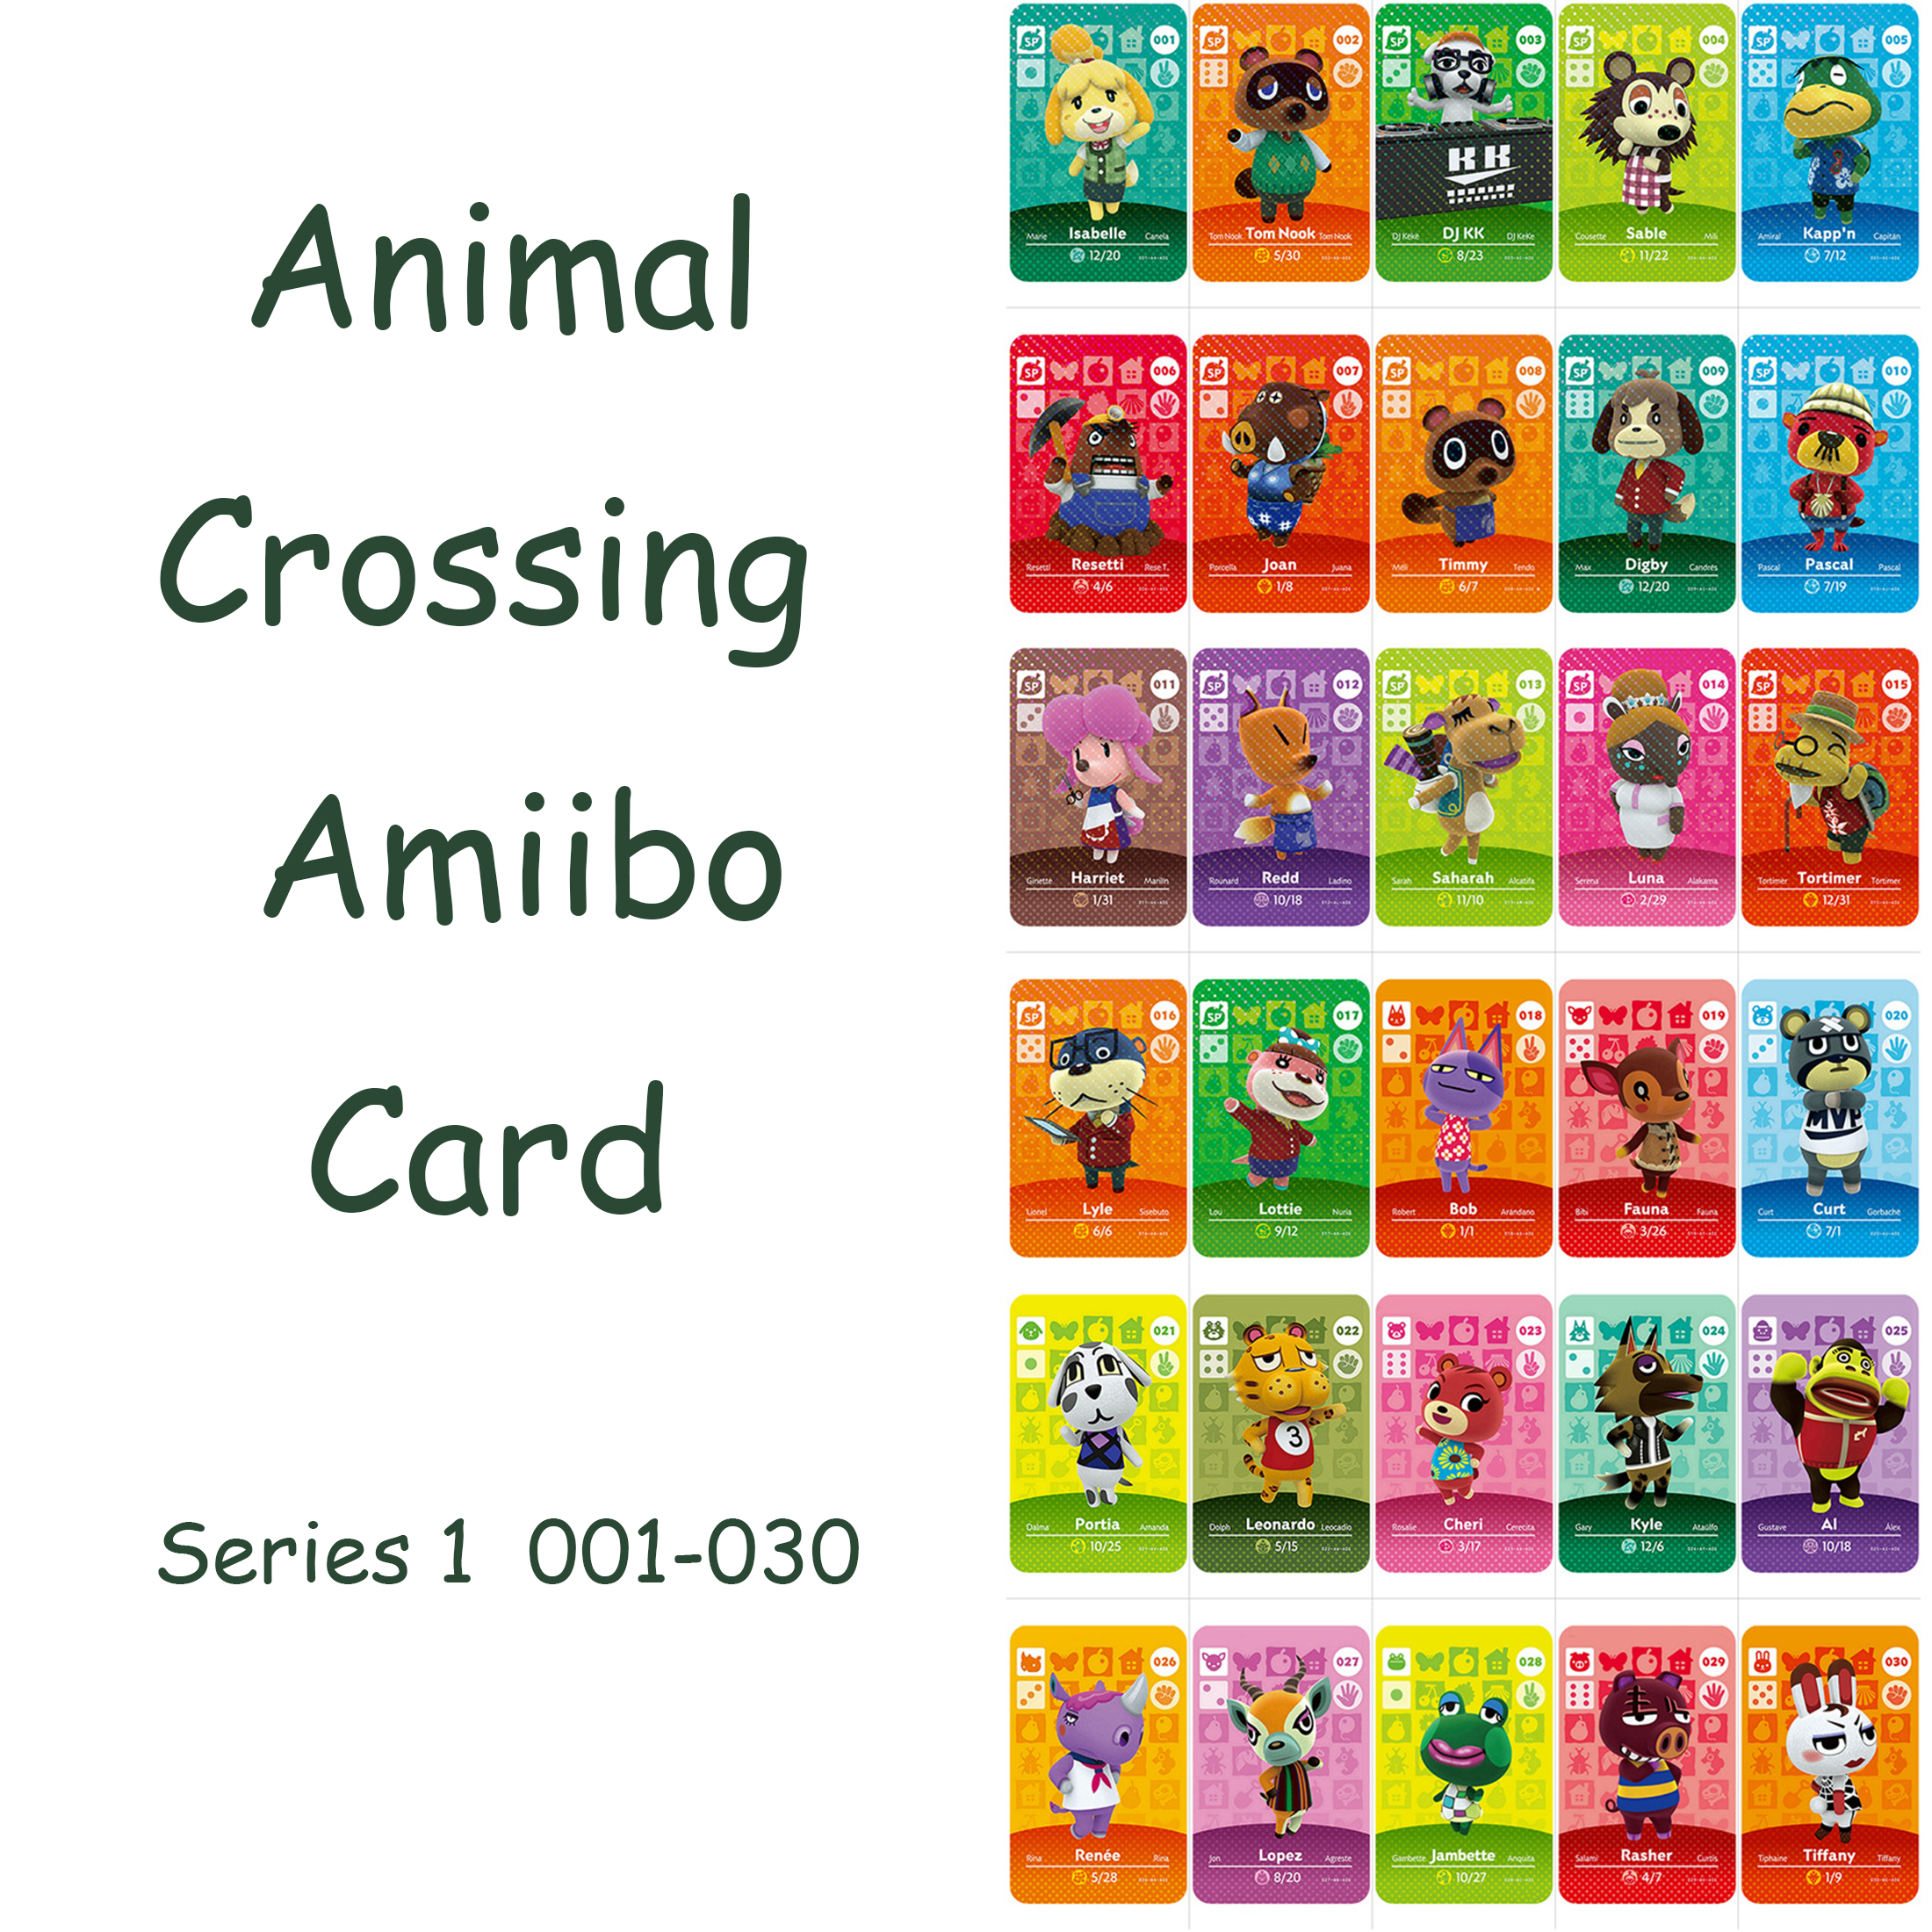 Animal Crossing Amiibo Card Series 1 (001 to 030) Amiibo Card Work for Ns Games Switch Welcome Amiibo Isabelle Pascal Harriet image